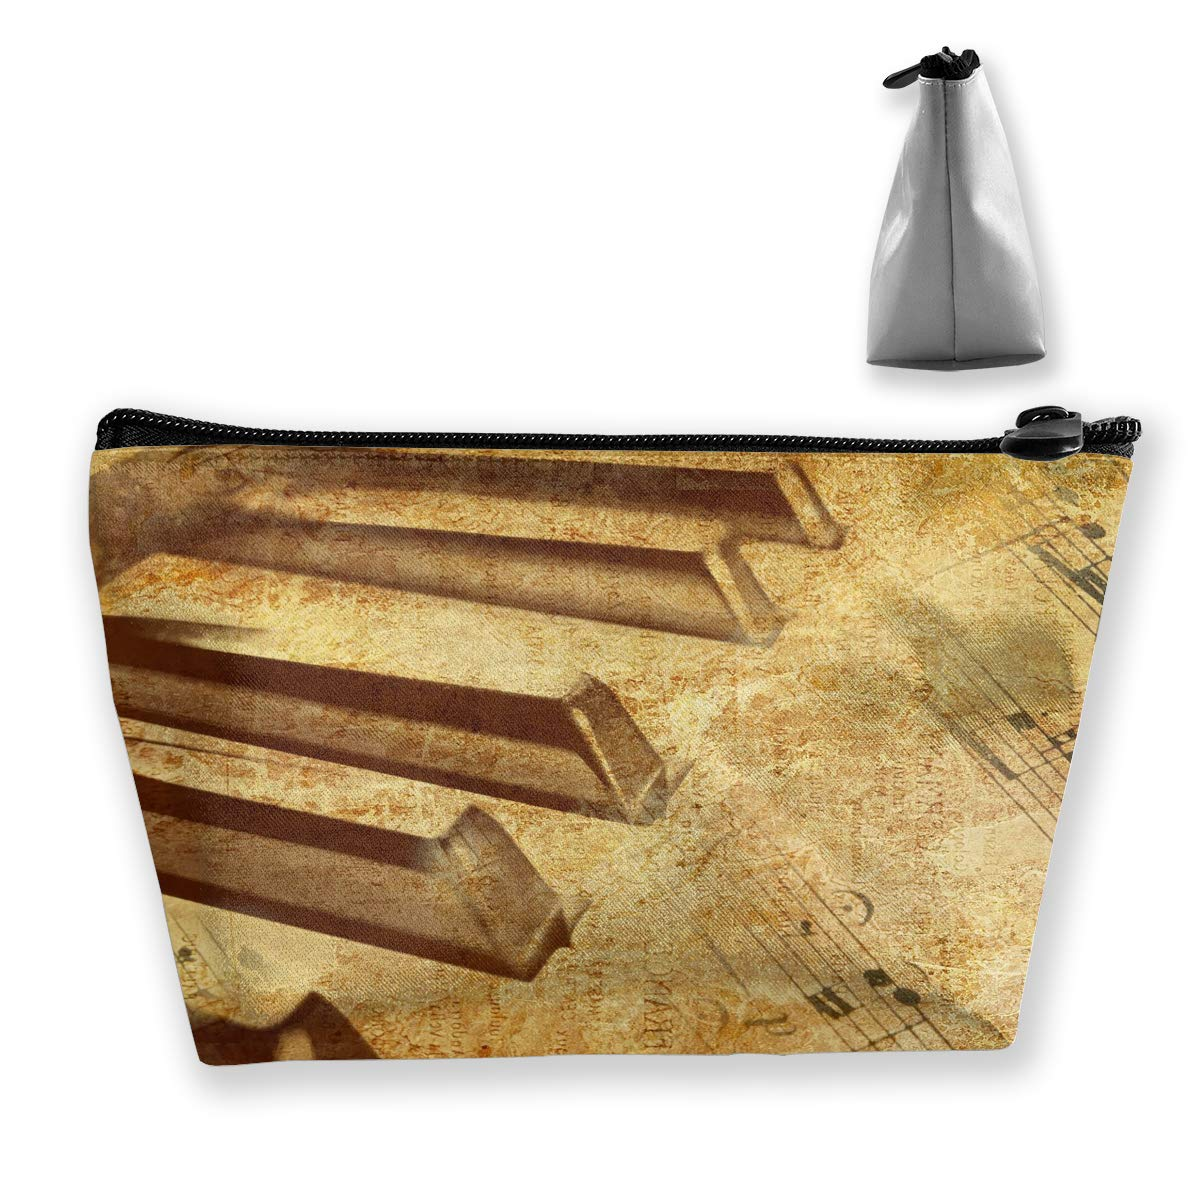 Trapezoid Toiletry Pouch Portable Travel Bag Piano Classic Zipper Wallet